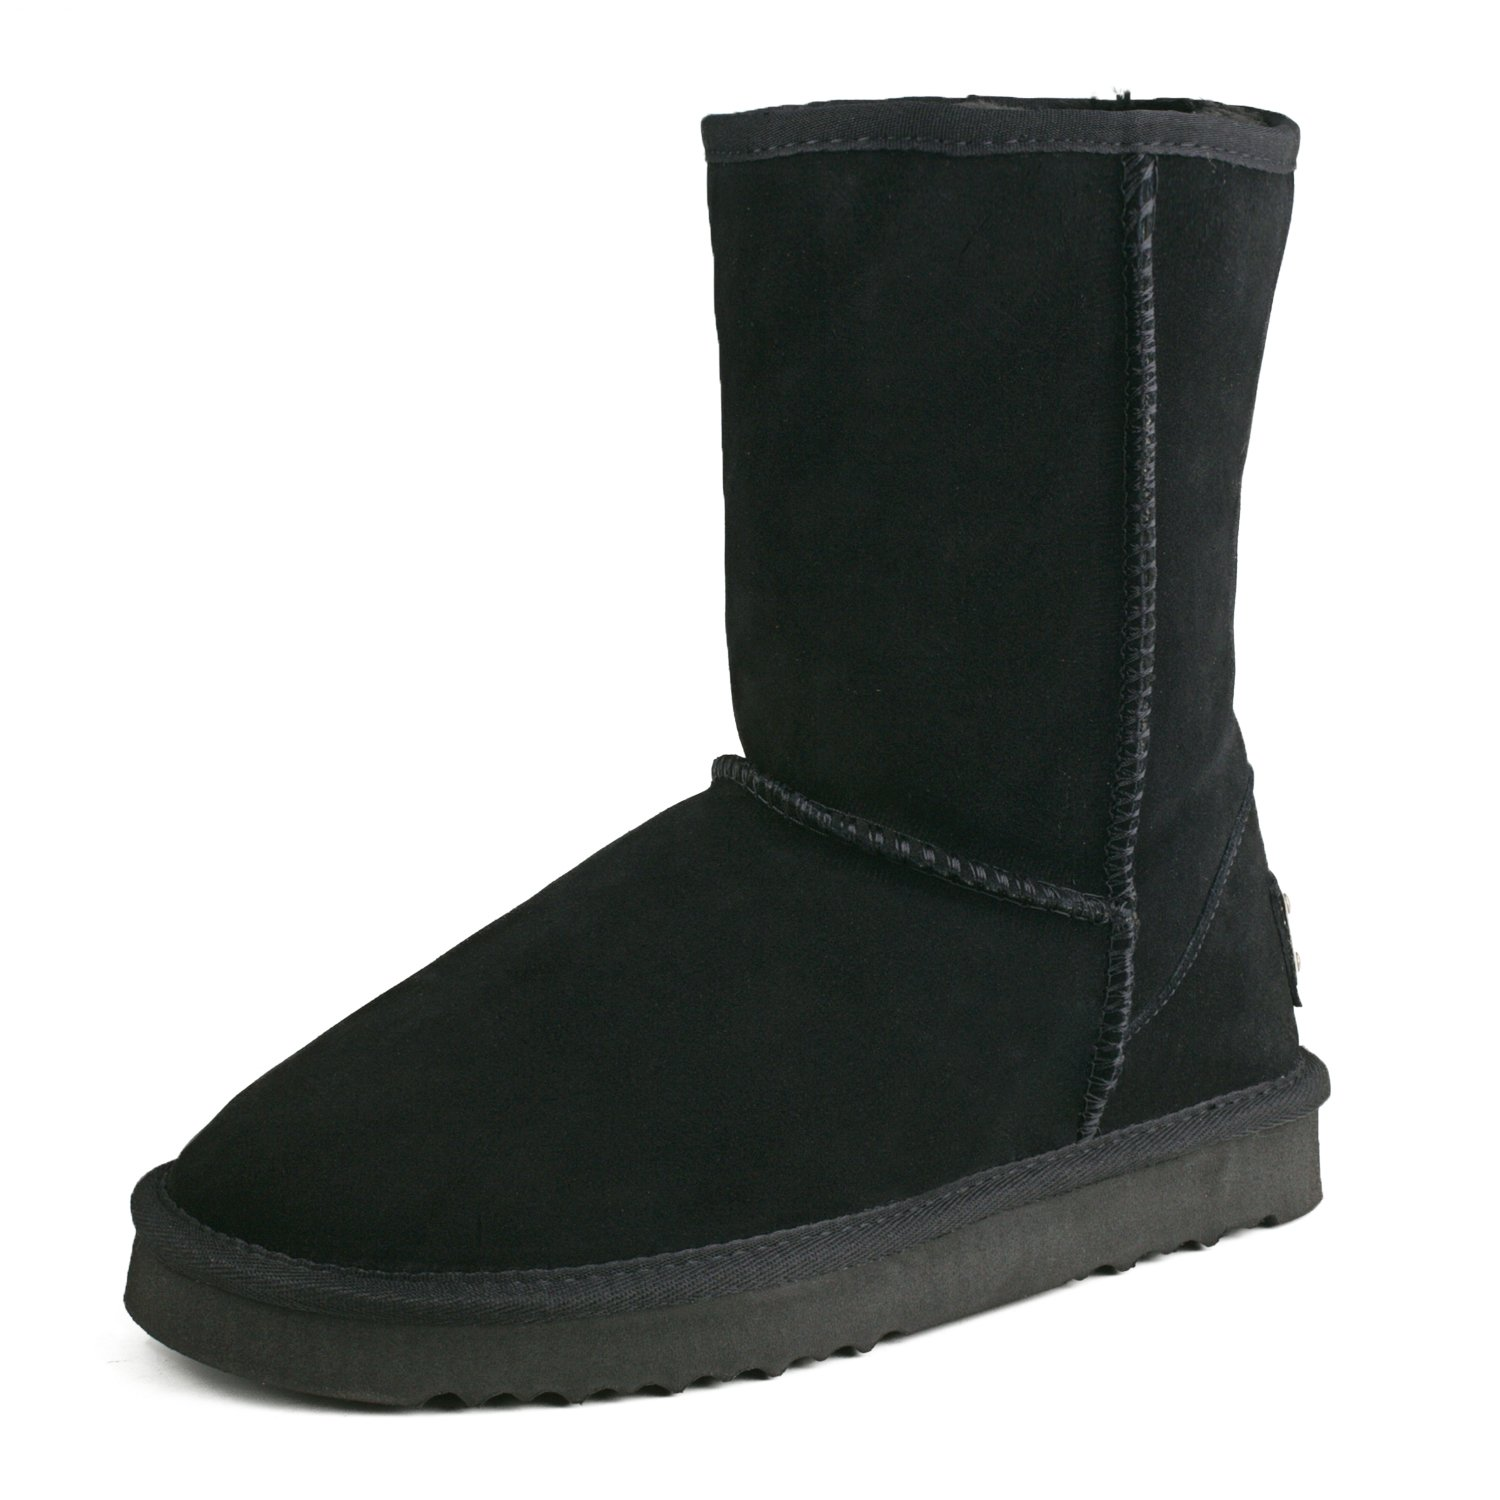 Black(f) Ausland--Women's Half Snow Boots, with Water-Resistant Vamp, Thick Fur Lining and Lightweight Rubber Sole